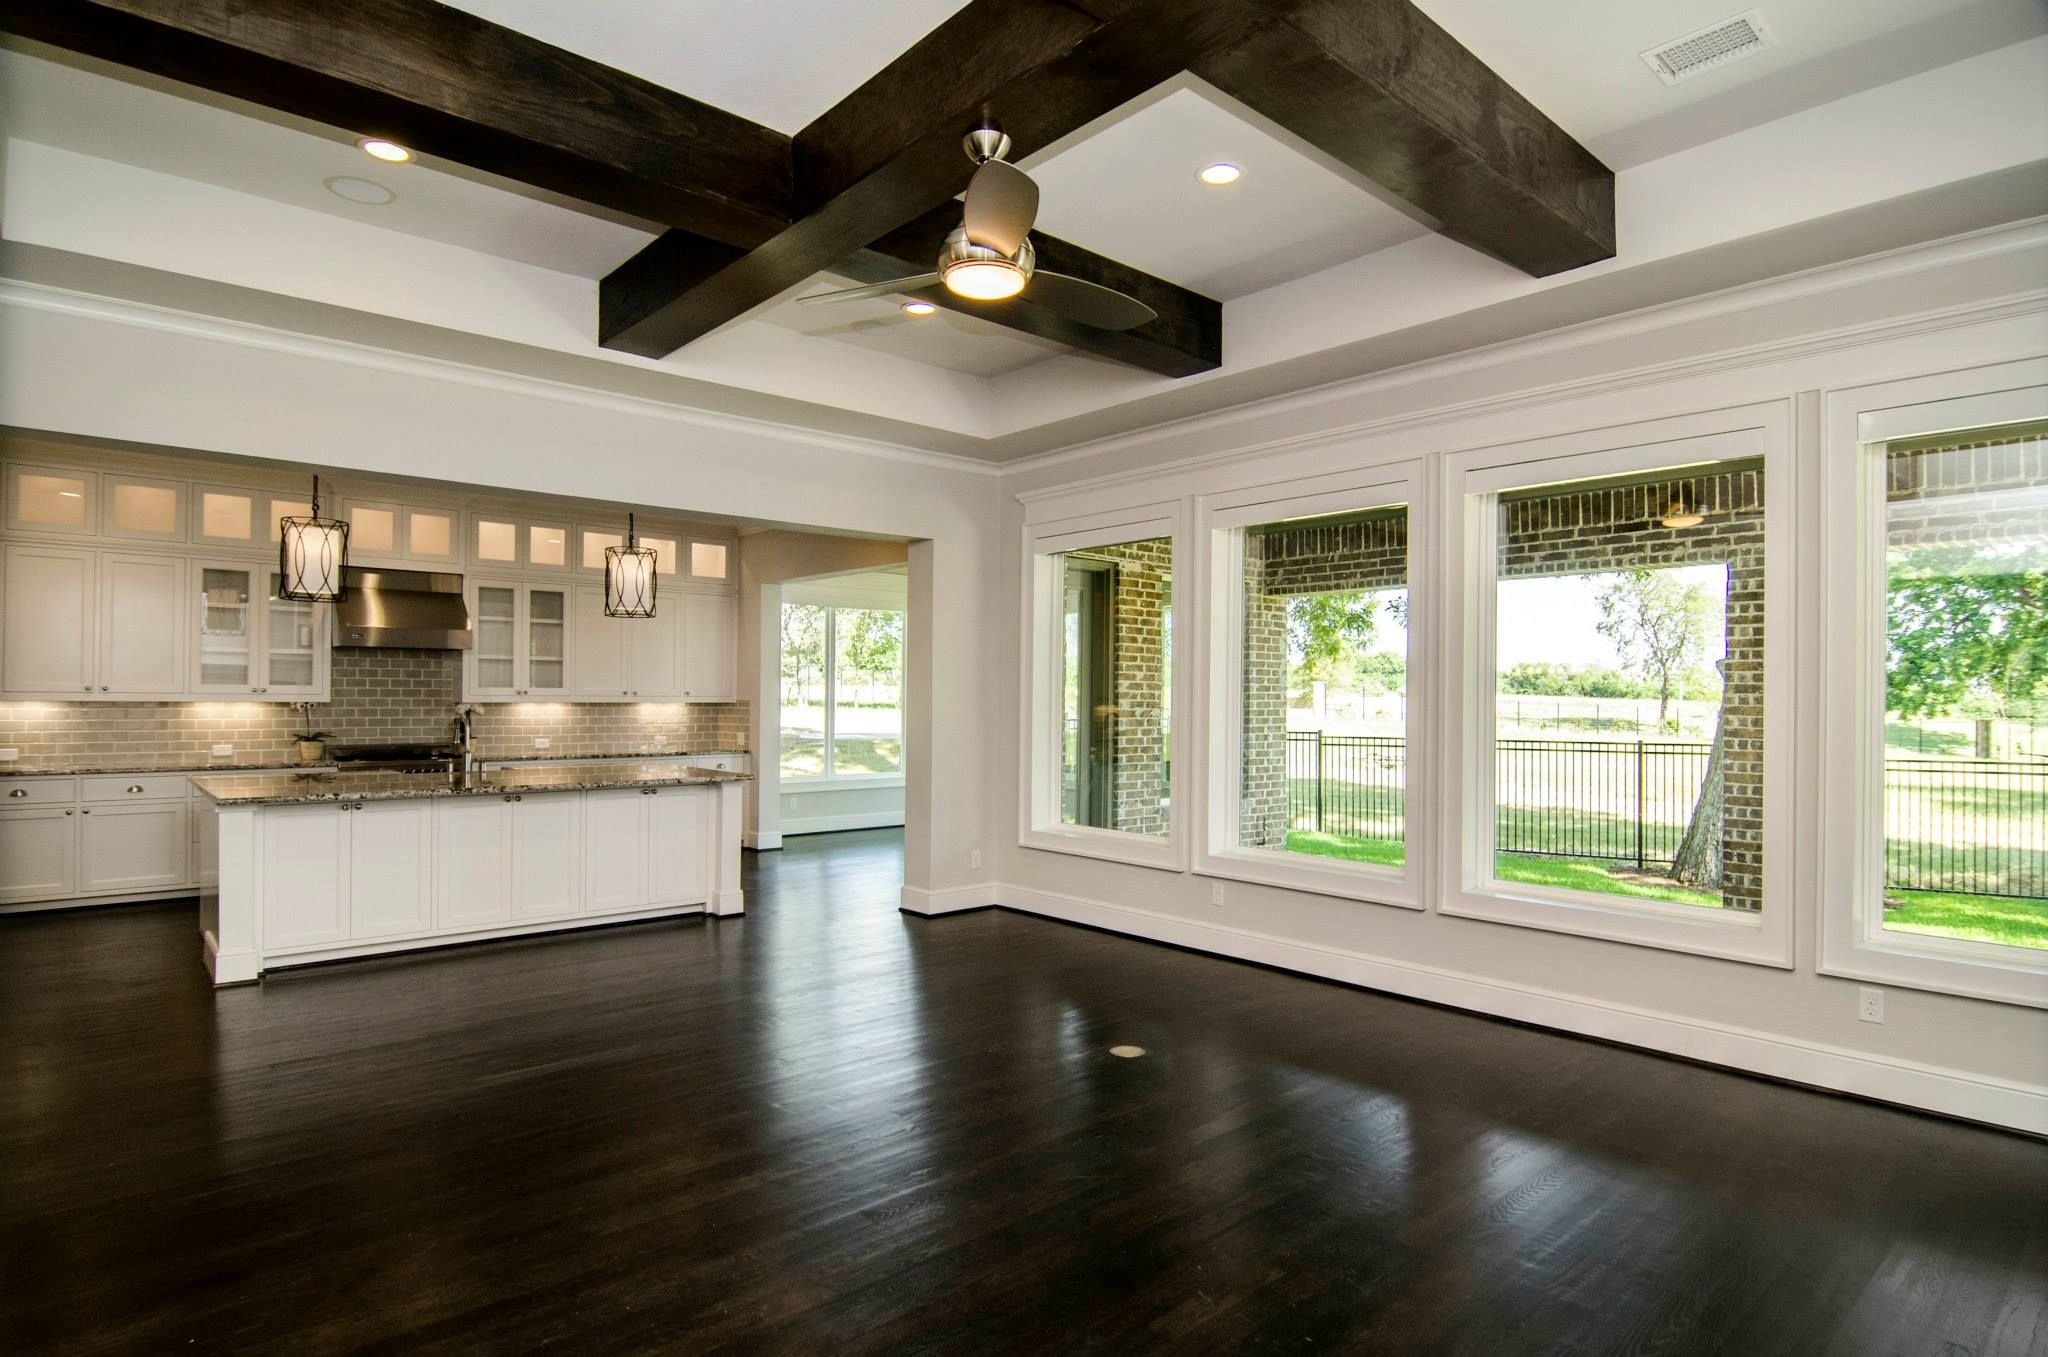 Open Floor Plan With Windows In Back And Windows In